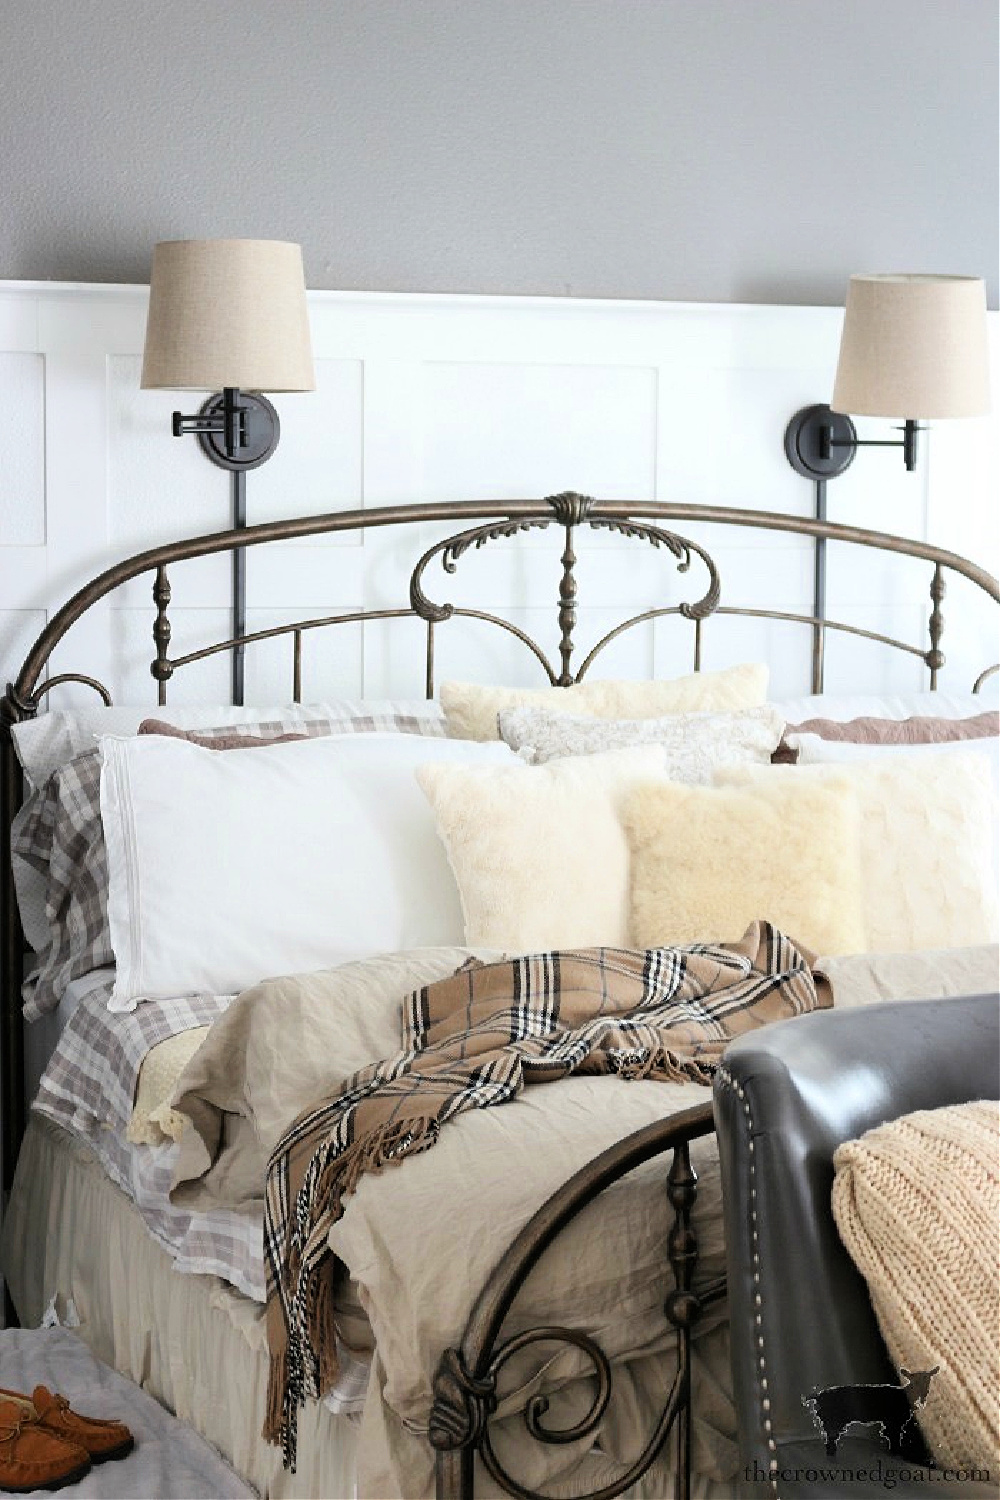 Simple Ways to Prepare Now for the Holidays-Christmas Bedroom Inspiration-The Crowned Goat